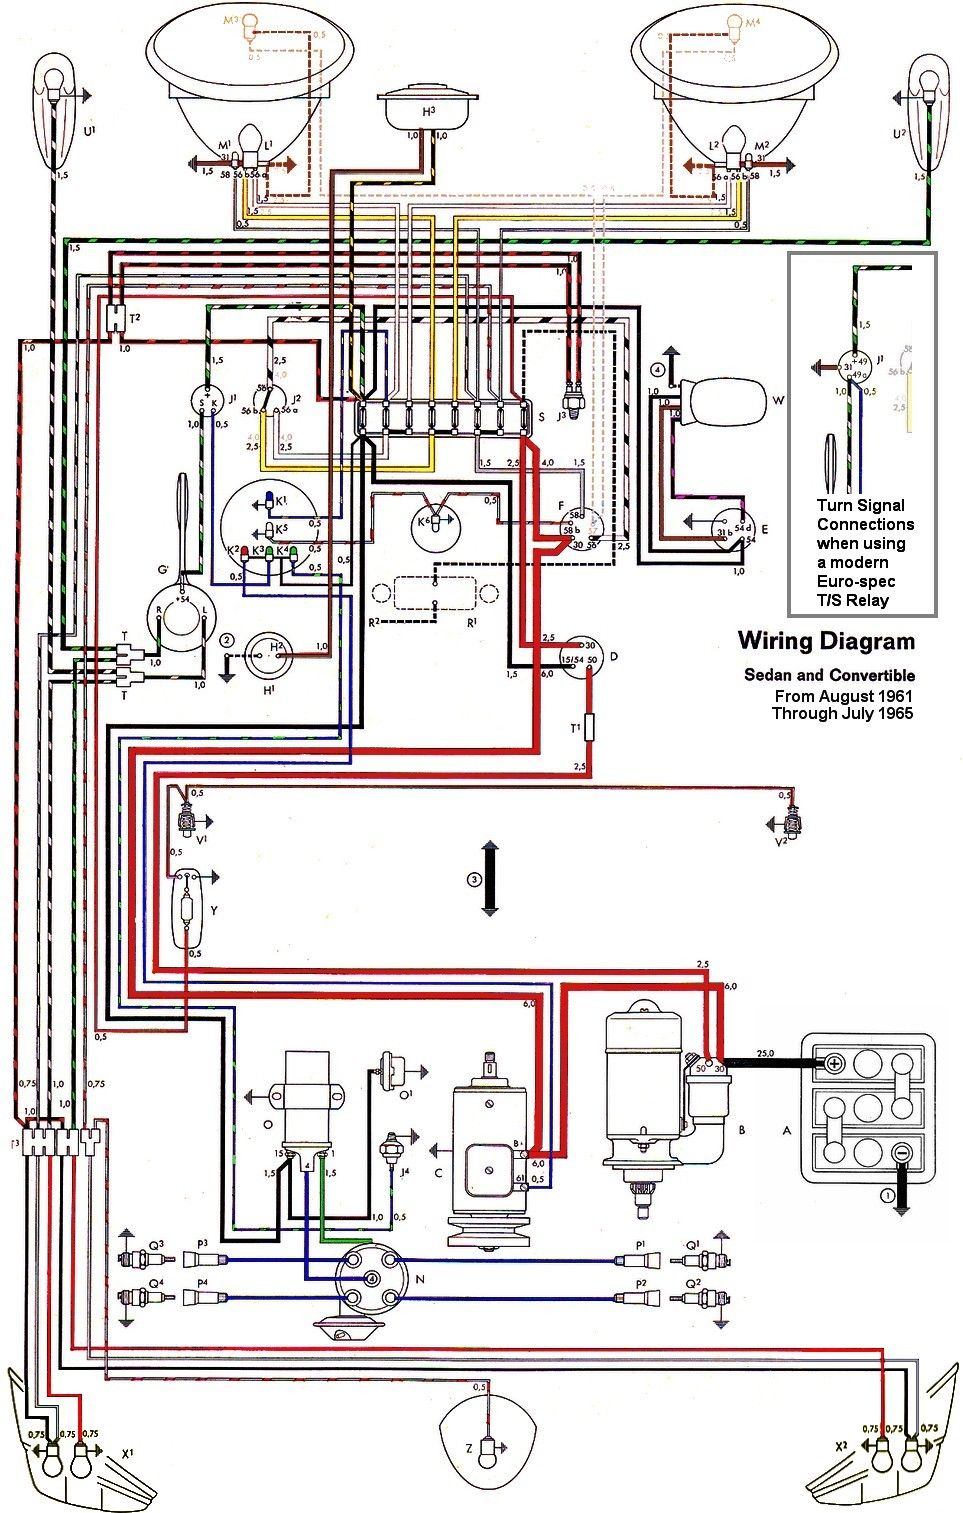 vw wiring diagram wiring diagram vw beetle sedan and convertible 1961 1965 vw wiring diagram vw beetle sedan and